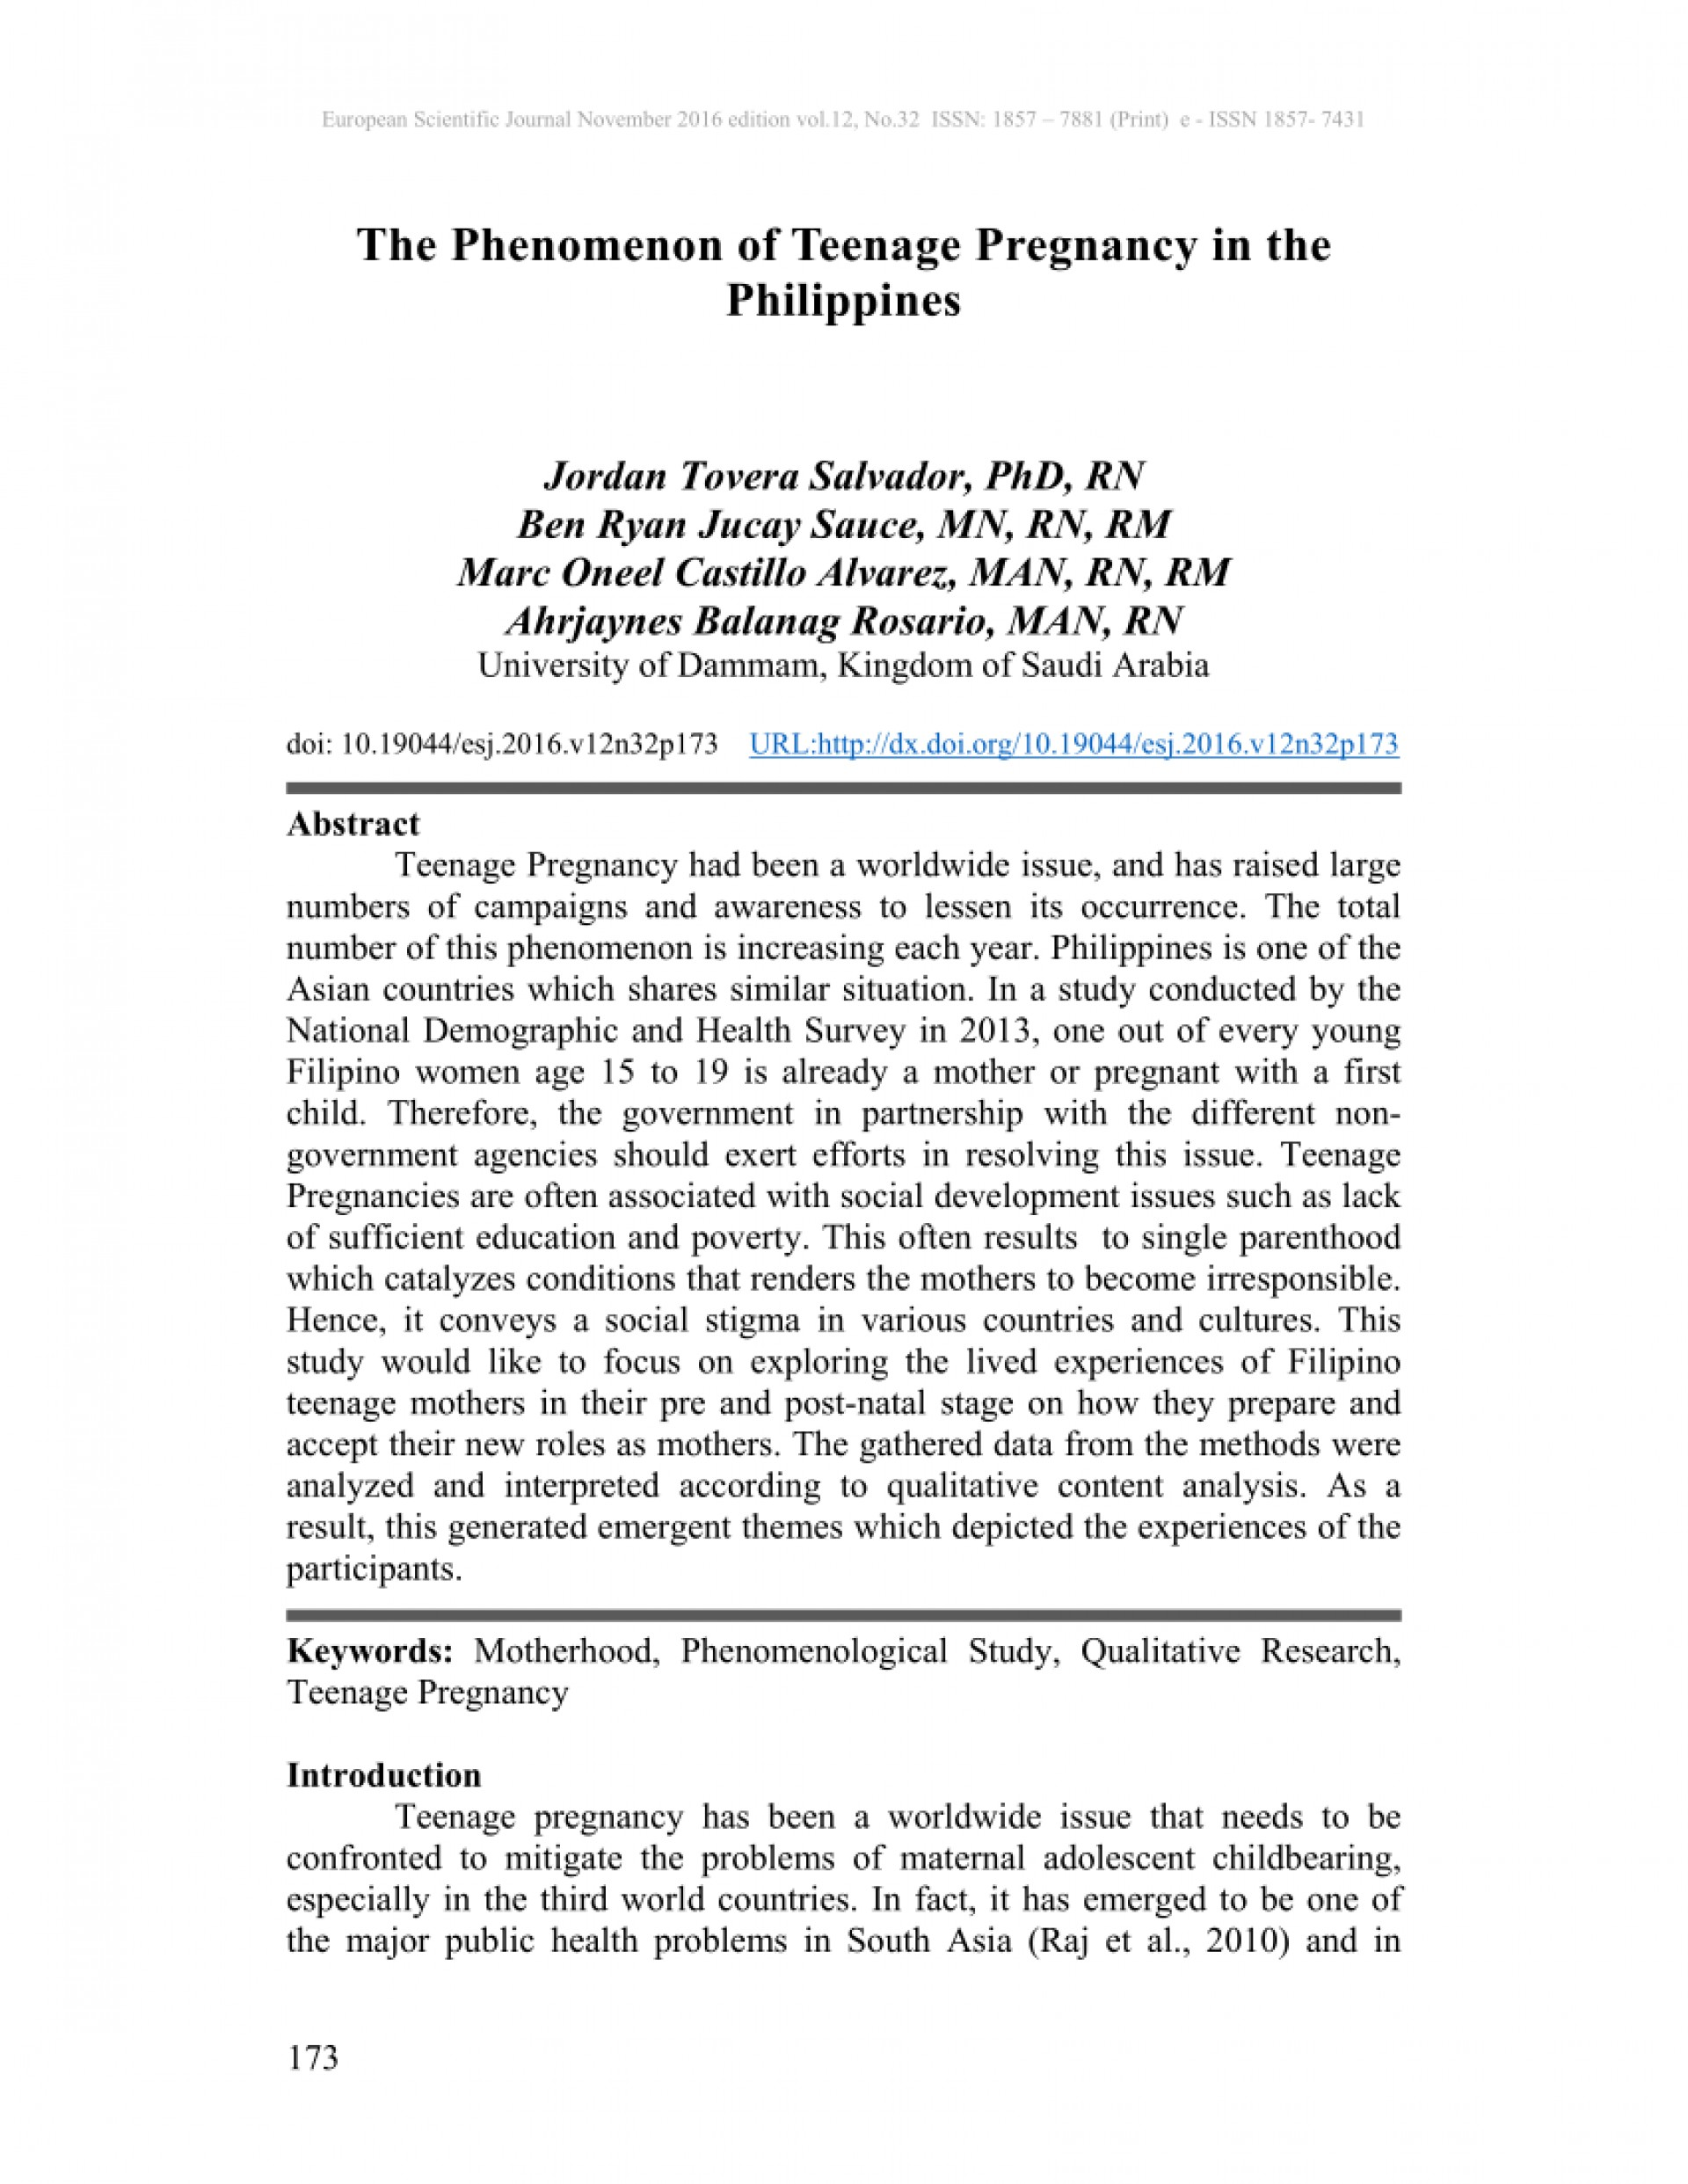 001 Introduction Of Research Paper About Teenage Pregnancy In The Philippines Wondrous A 1920